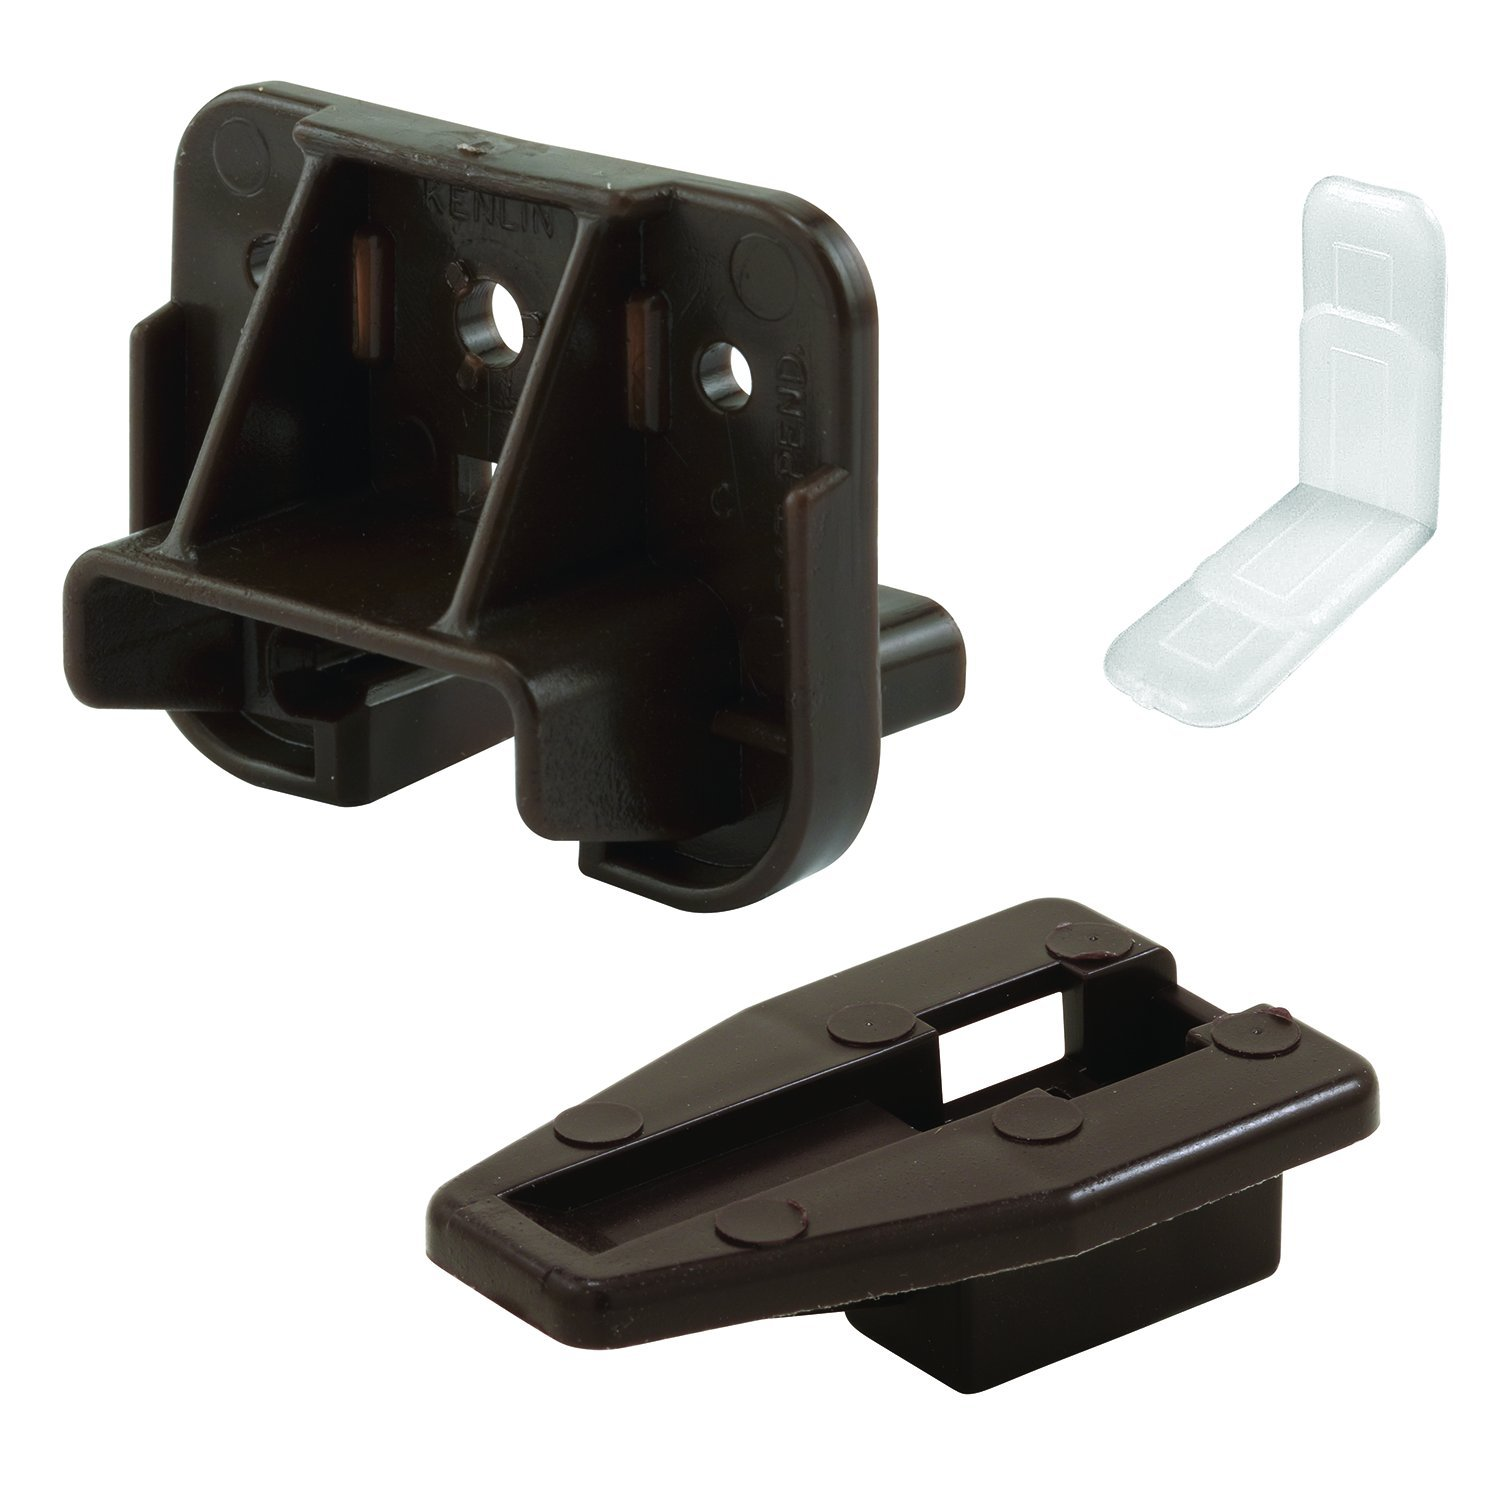 Slide-Co 223887 Drawer Track Guide and Glides – Replacement Furniture Parts for Dressers, Hutches and Night Stand Drawer Systems (Pack of 2)